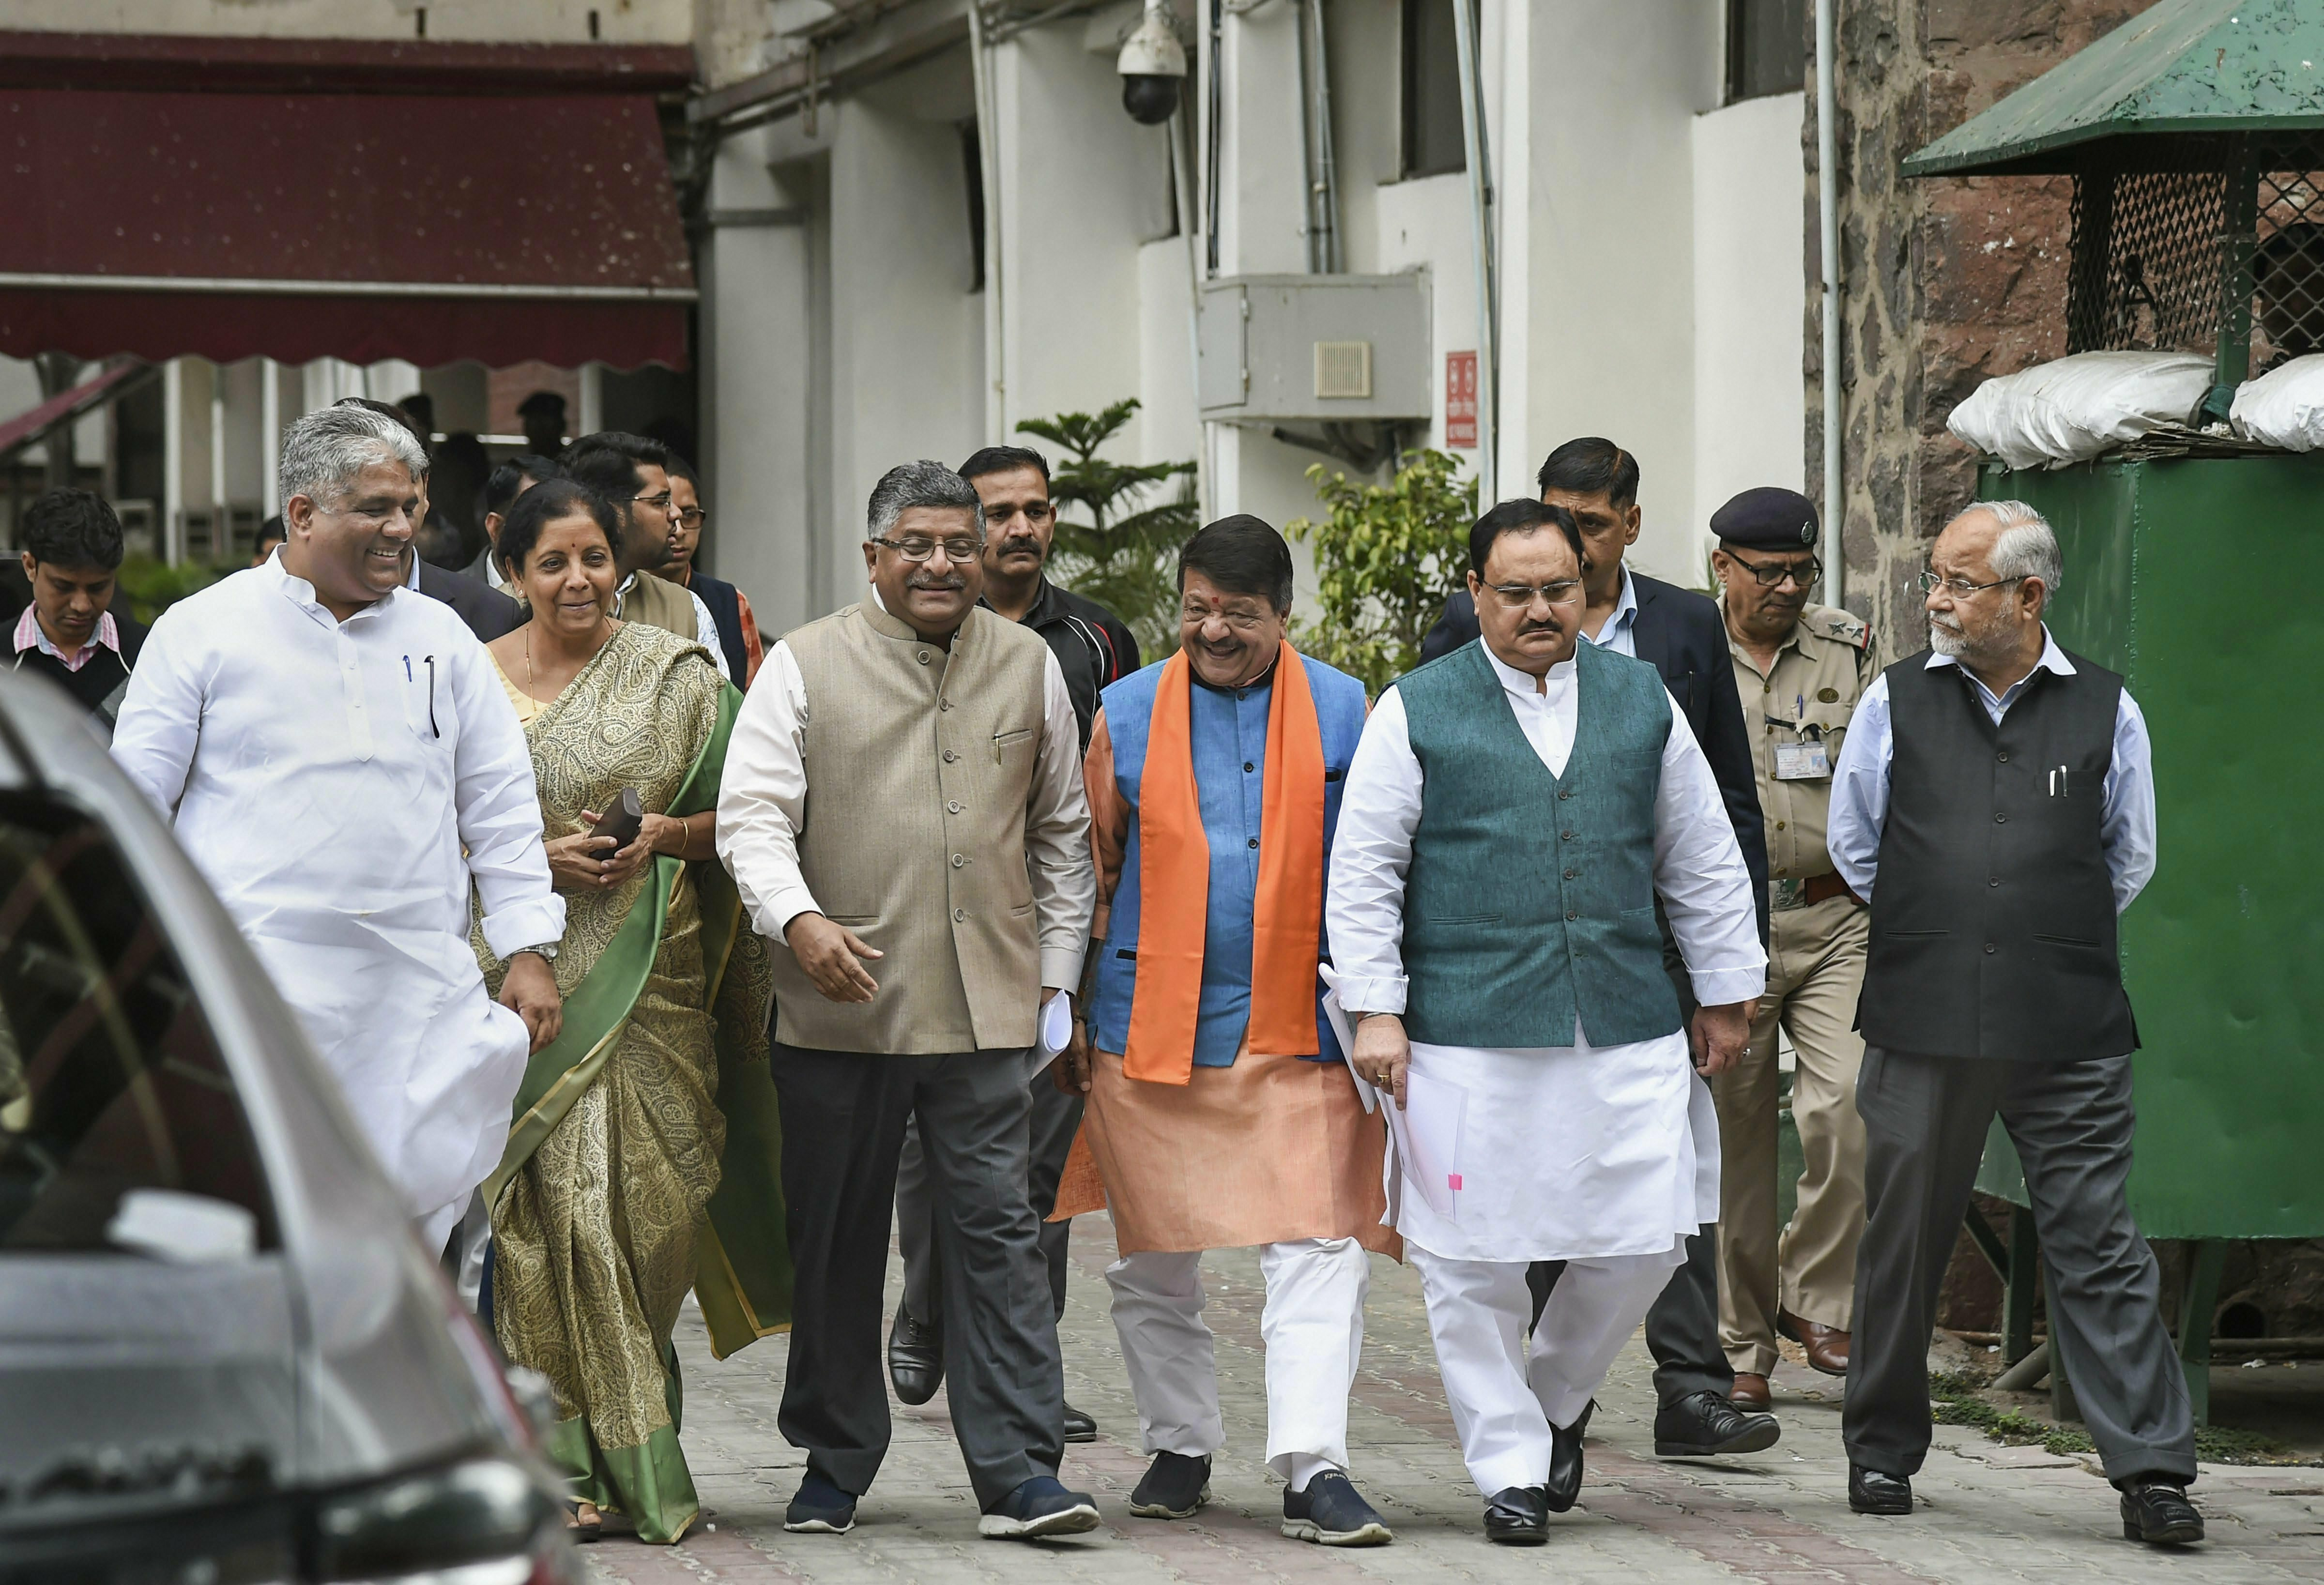 BJP delegation comprising Ravi Shankar Prasad, Nirmala Sitharaman, JP Nadda, Bhupender Yadav, Kailash Vijayvargiya and others arrive to address the media after their meeting with the Election Commission of India, in New Delhi - PTI